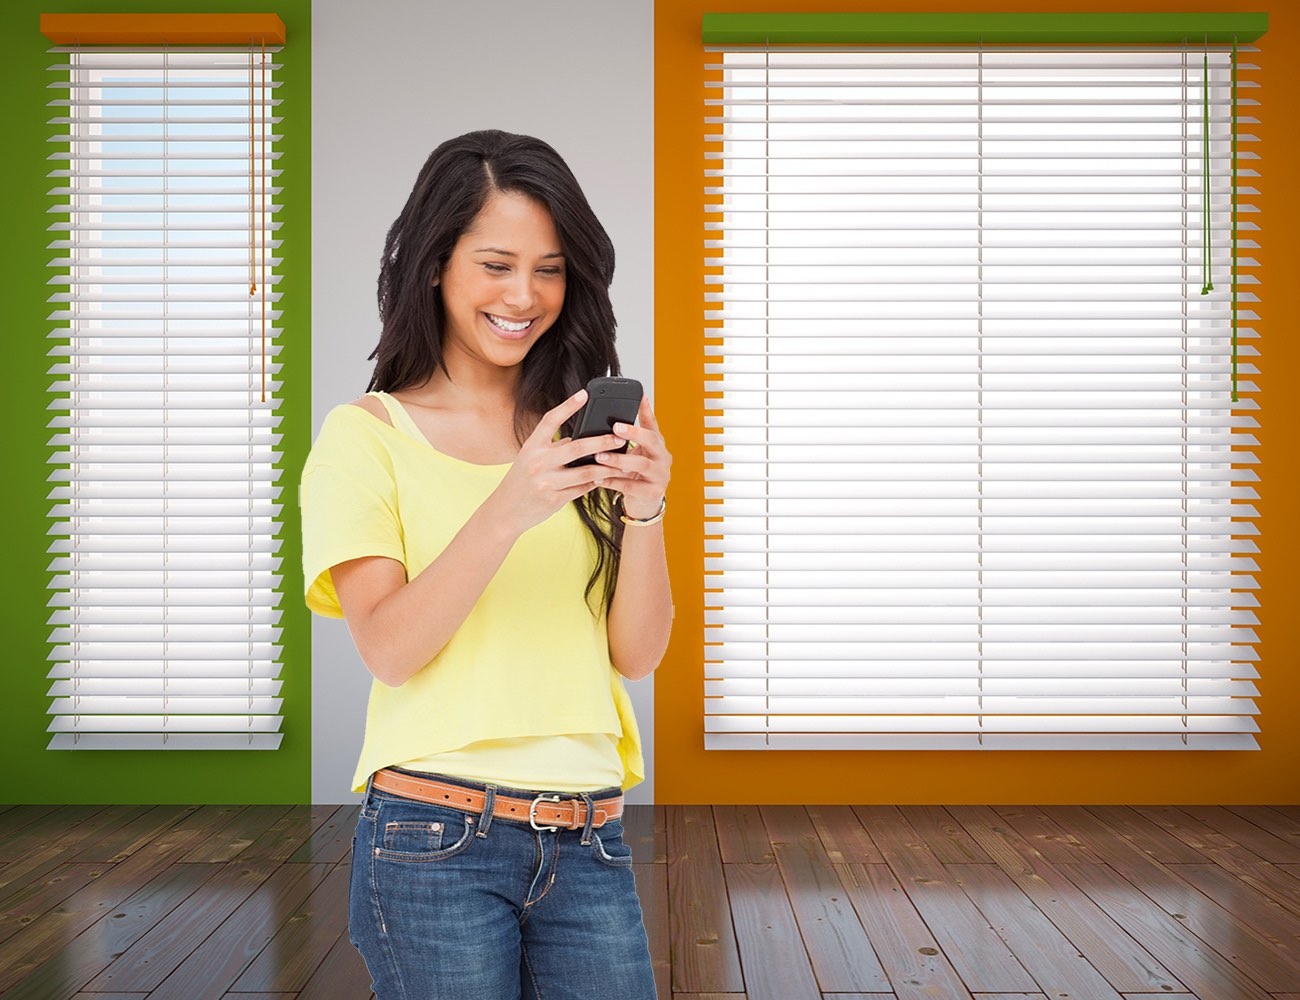 iBlinds Home Automation for Your Window Blinds